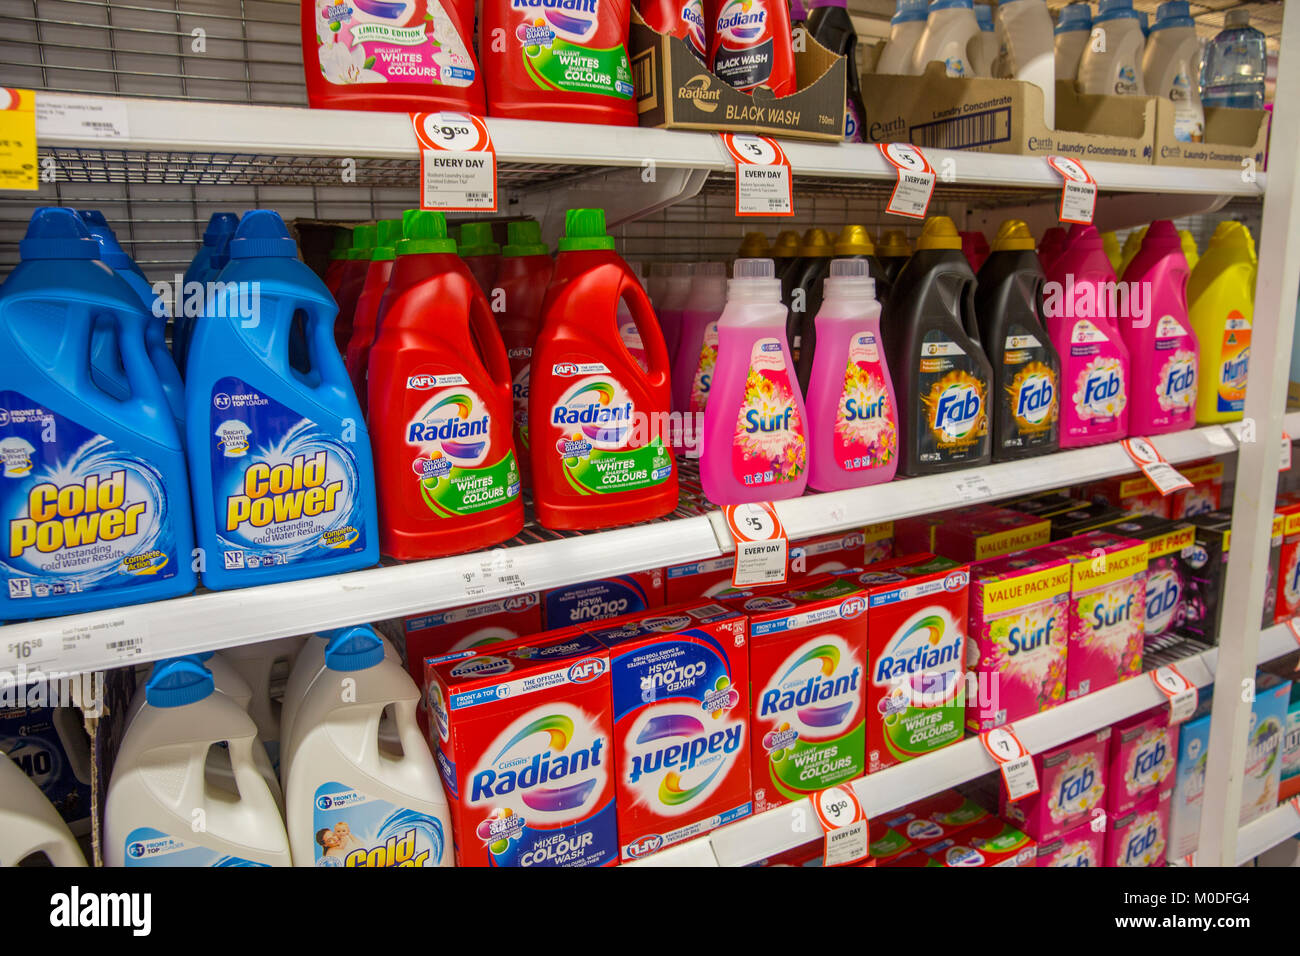 Detergents Stock Photos Amp Detergents Stock Images Alamy